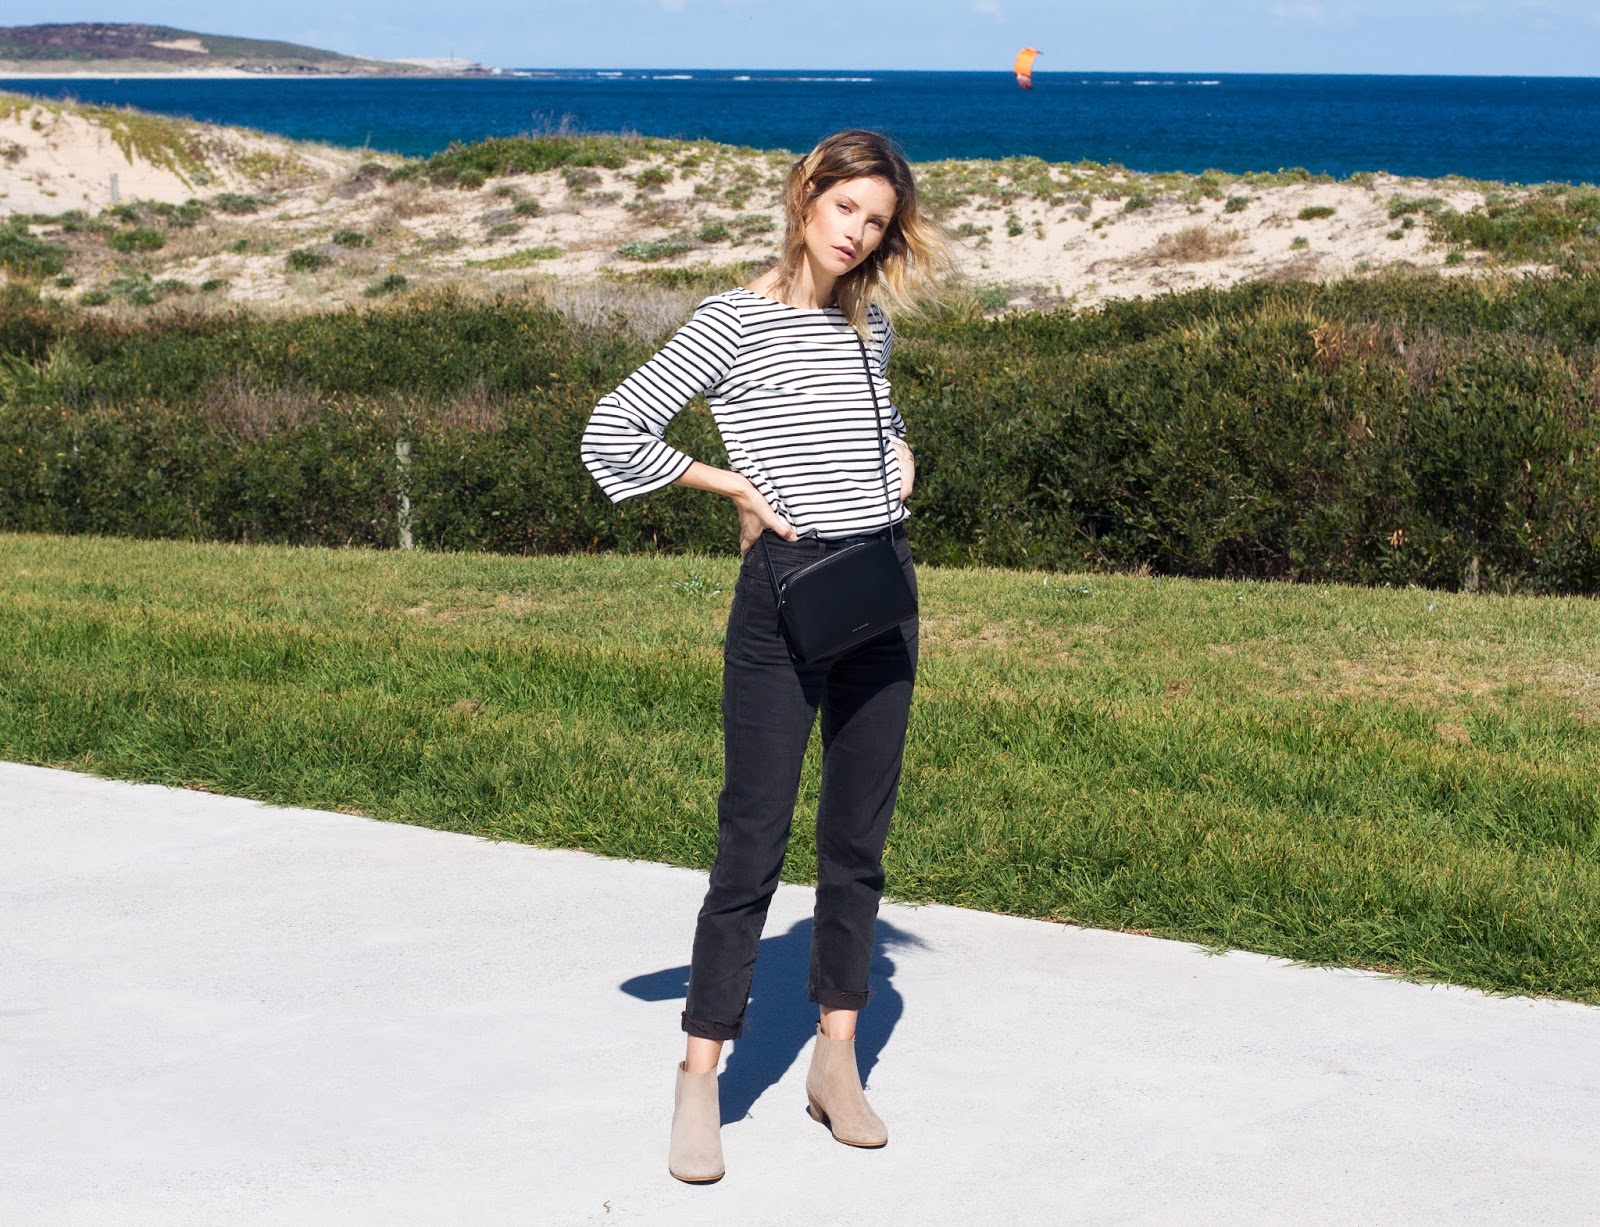 How To Wear: The Striped Tee From Day To Night